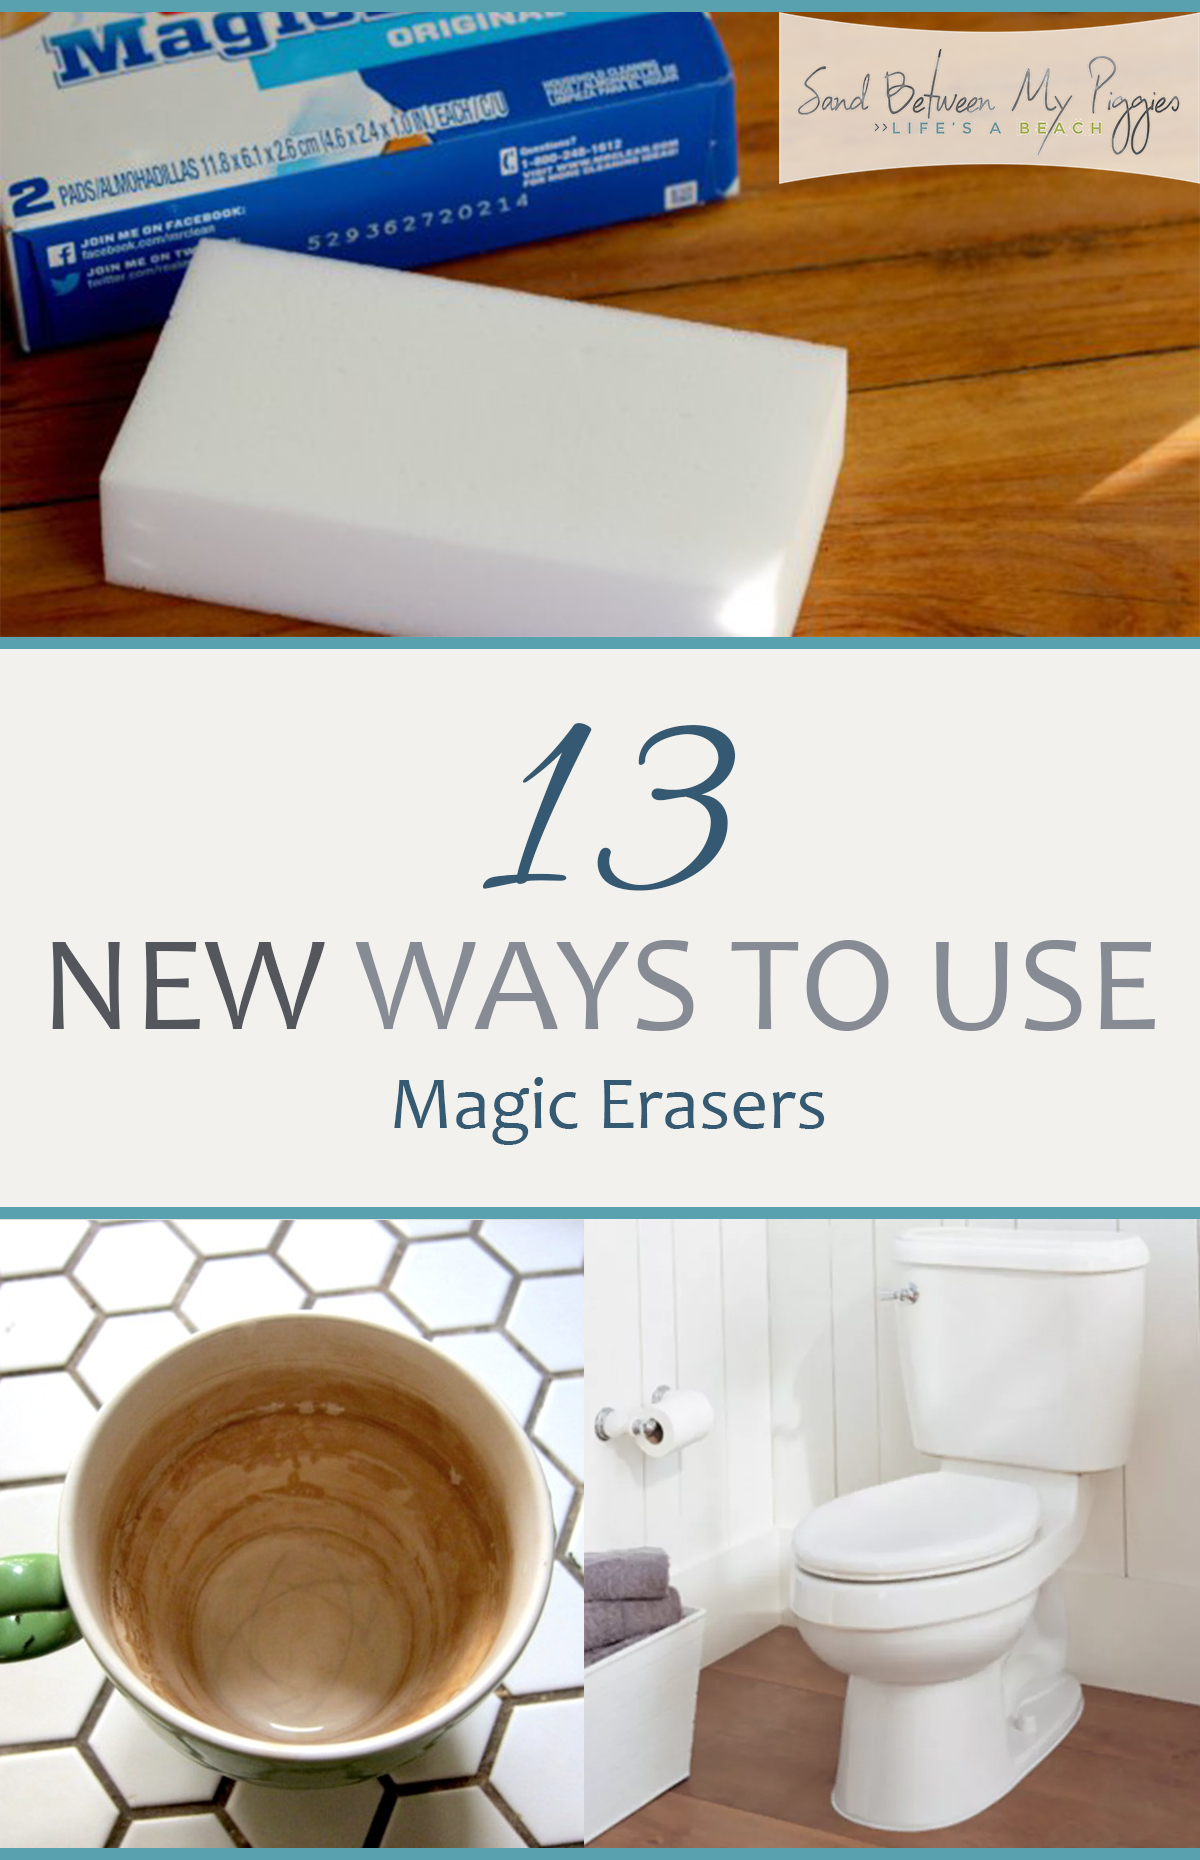 Magic Erasers, Uses for Magic Erasers, Magic Eraser TIps and Tricks, Cleaning TIps and Tricks, Magic Eraser Hacks, Life Hacks, Magic Eraser Tips, Cleaning Hacks, Life TIps and Tricks, Popular Pin. #Cleaning #CleaningTricks #HomeCleaningTips #MagicEraserHacks #CleanHome #HowToGetACleanHome